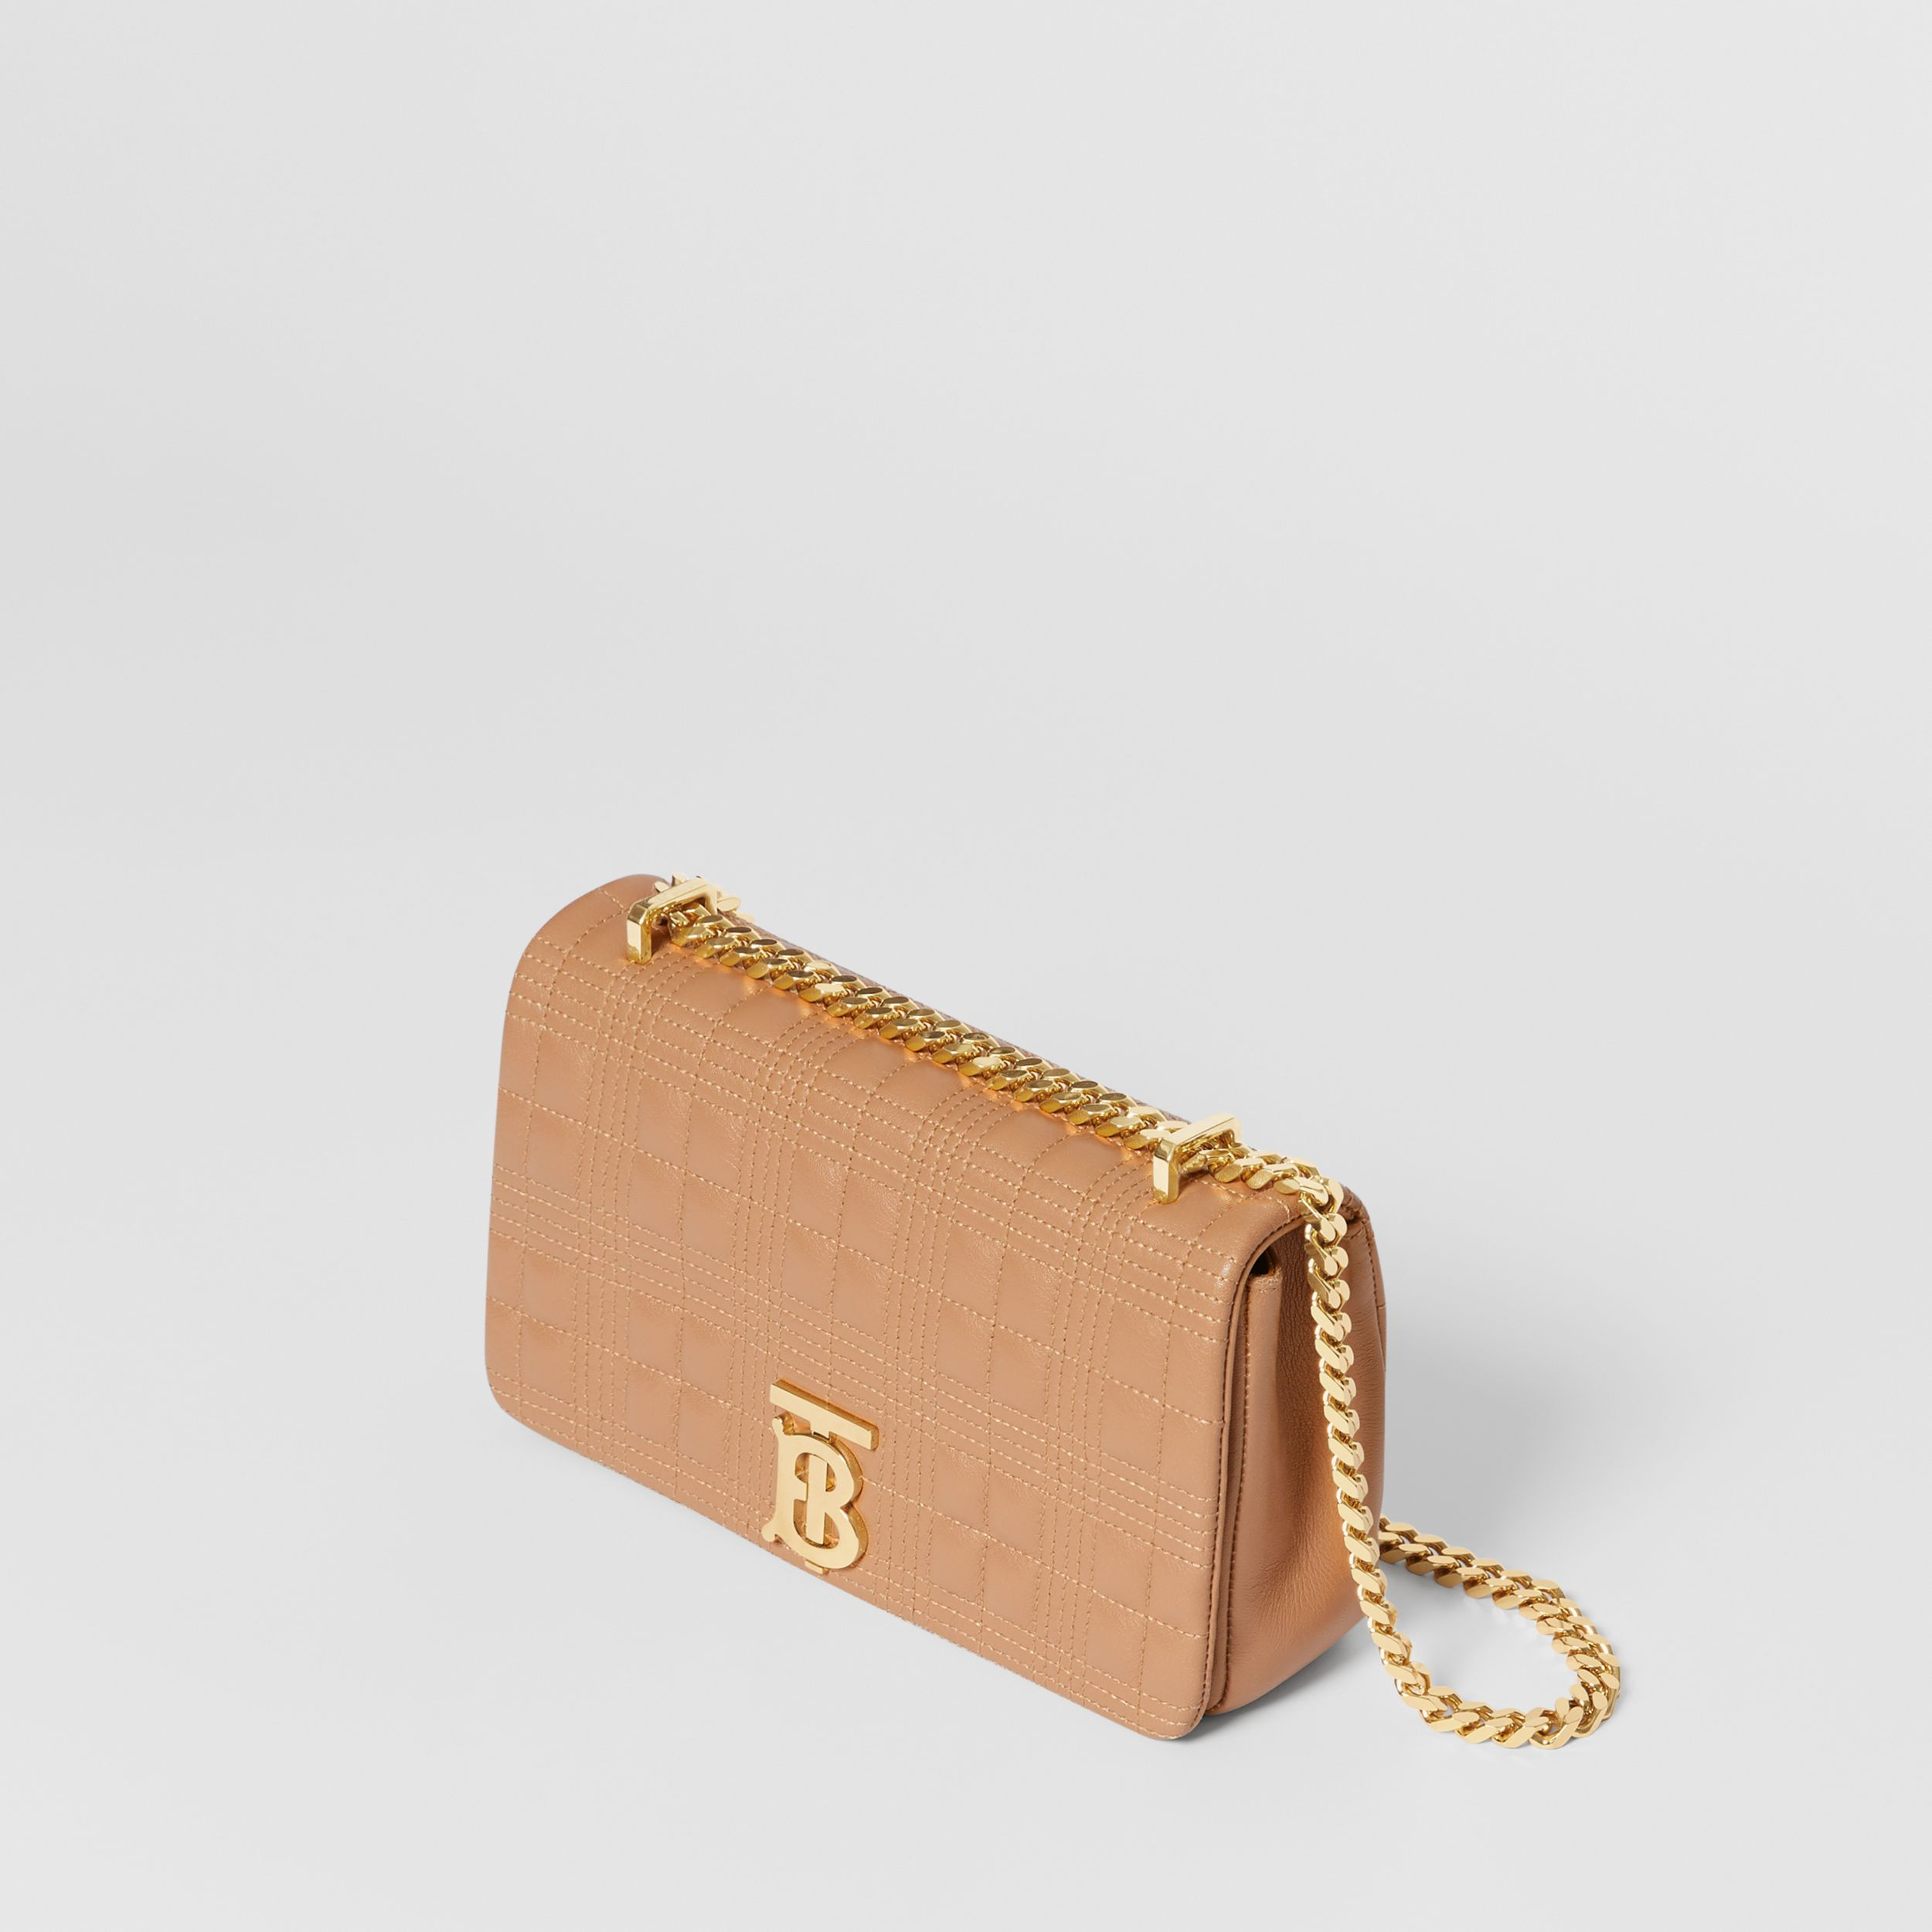 Small Quilted Lambskin Lola Bag in Camel/light Gold | Burberry - 4